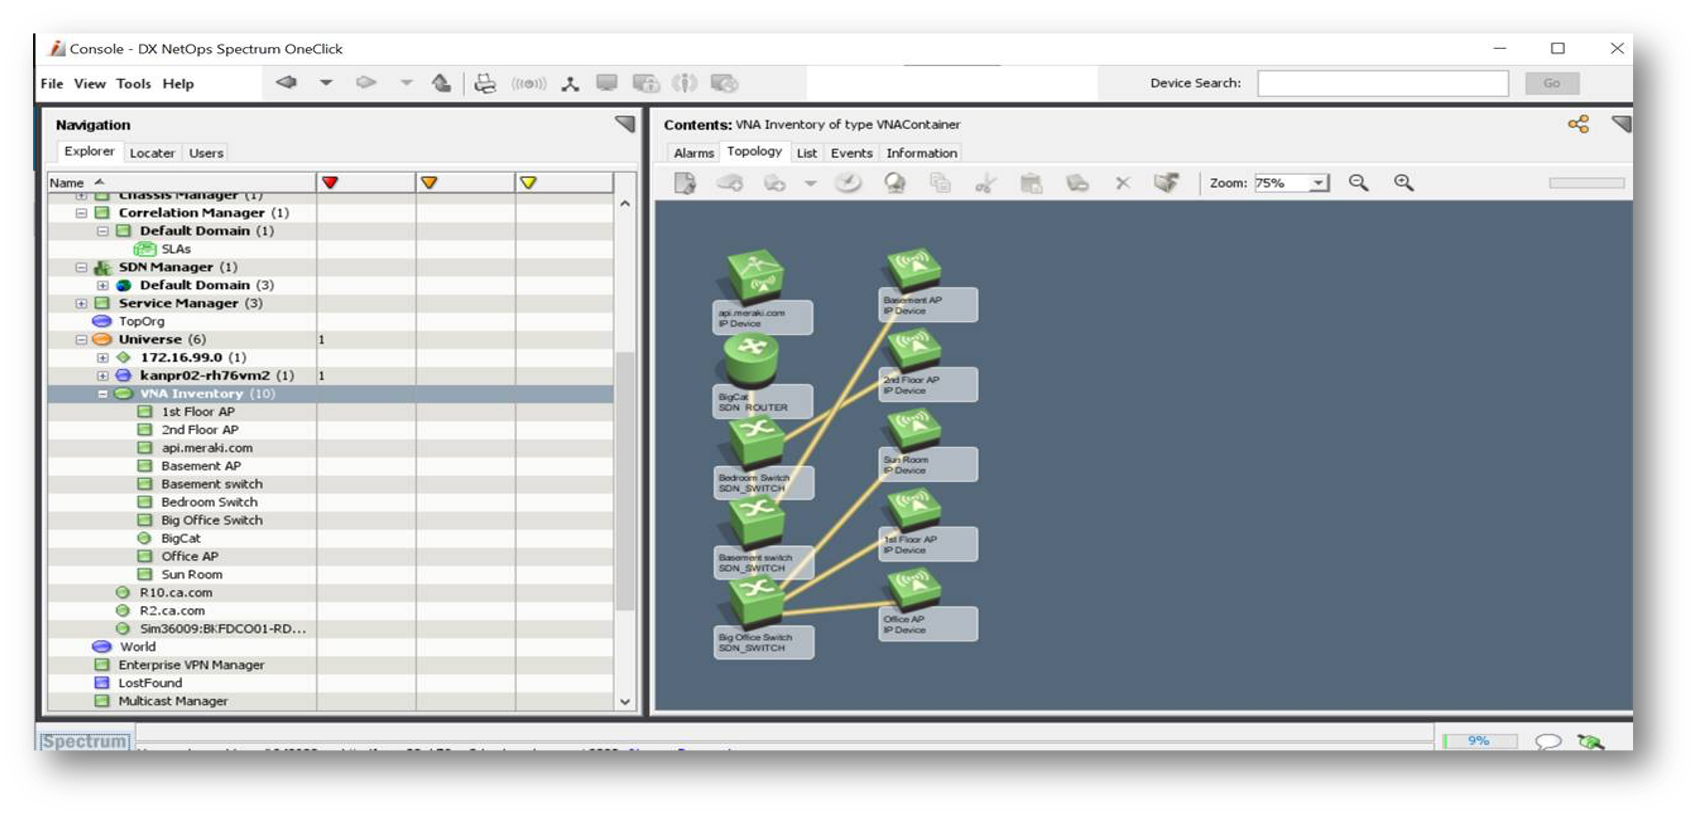 ESD_FY21_Academy-Blog.What's New In DX NetOps Spectrum Network Monitoring Software.Figure_02